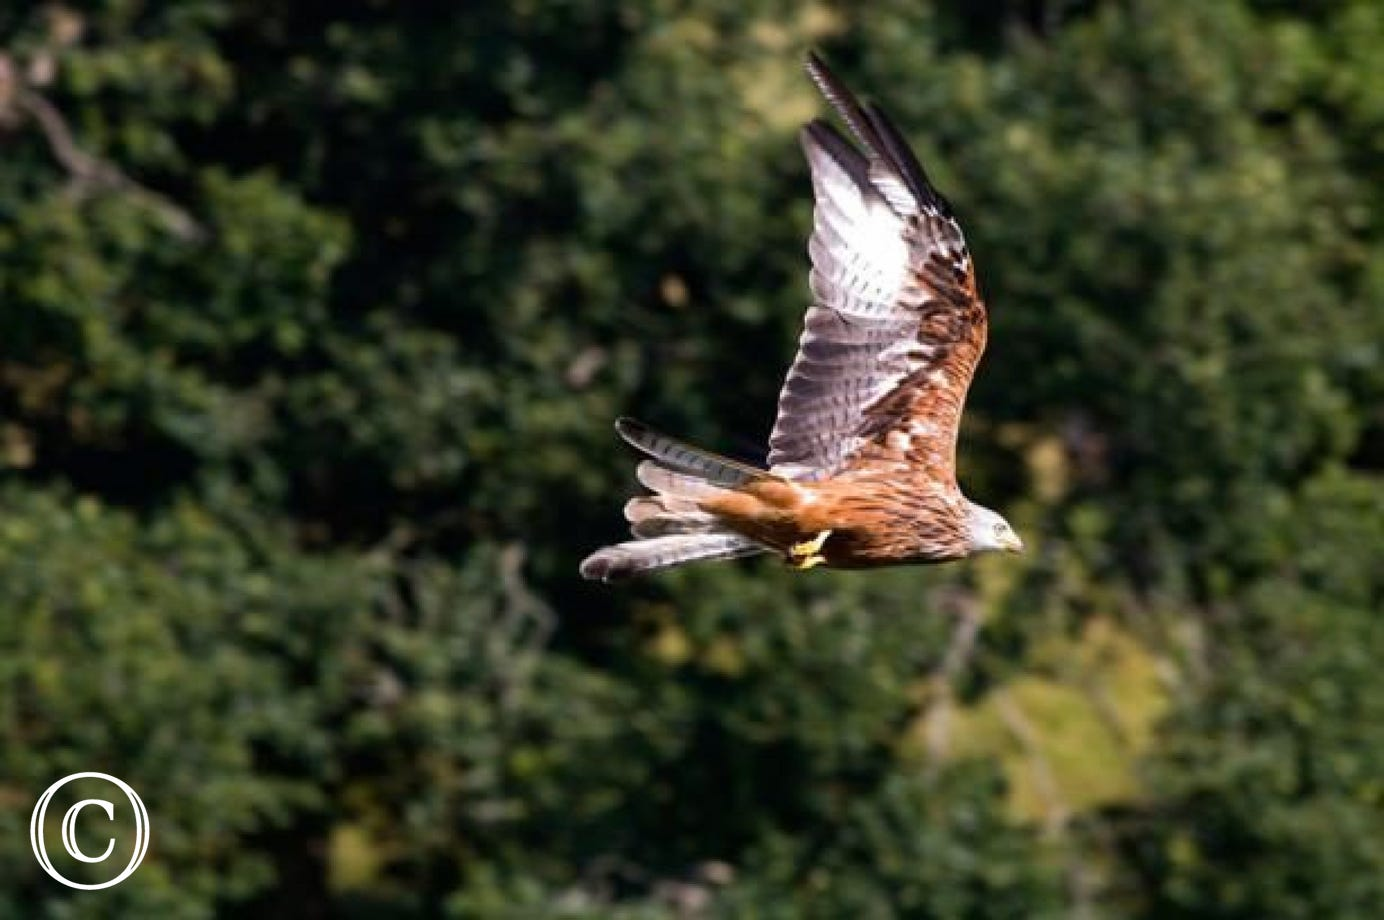 Visit the Red Kite Feeding Centre at Nant yr Arian